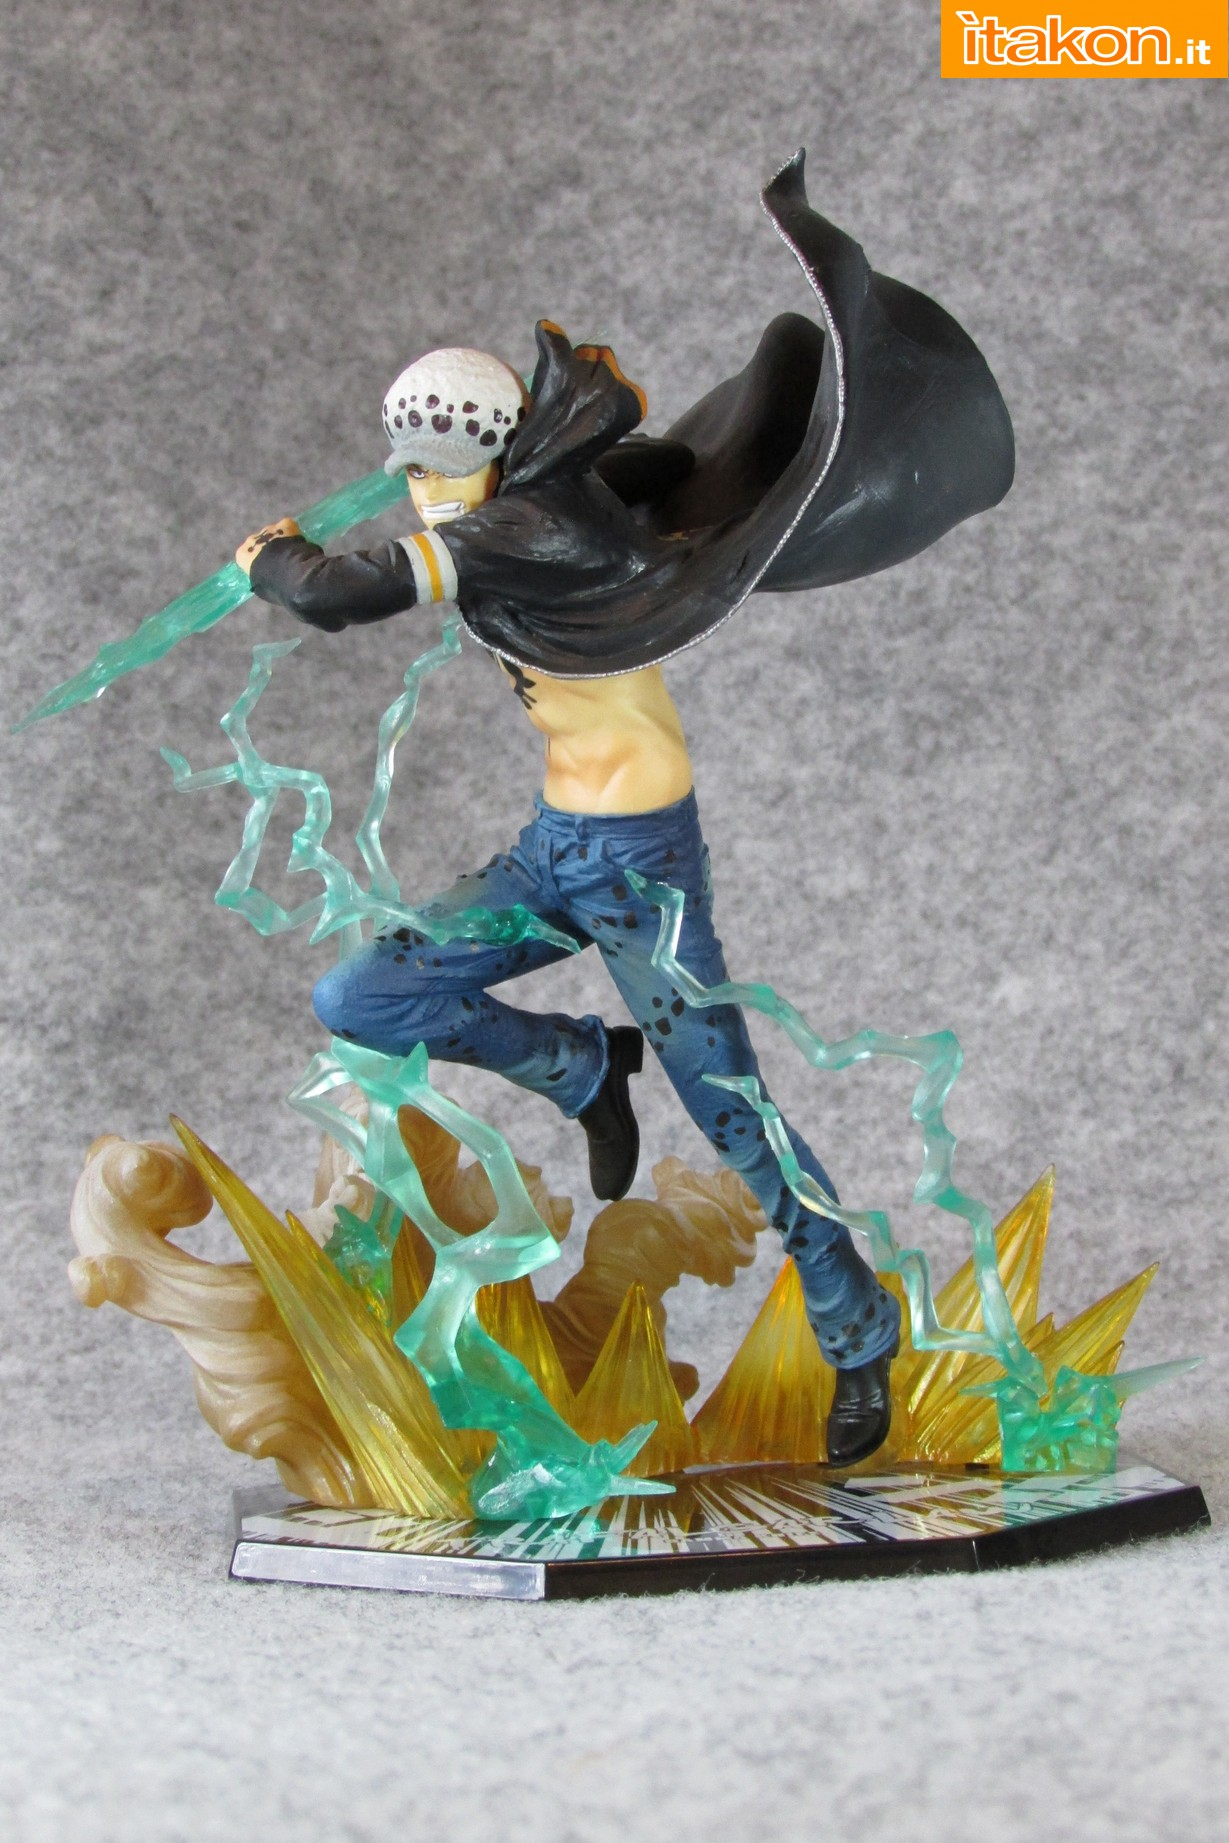 Link a One Piece Trafalgar Law Gamma Knife Figuarts ZERO Chou Gekisen Extra Battle Recensione Review Itakon.it 12